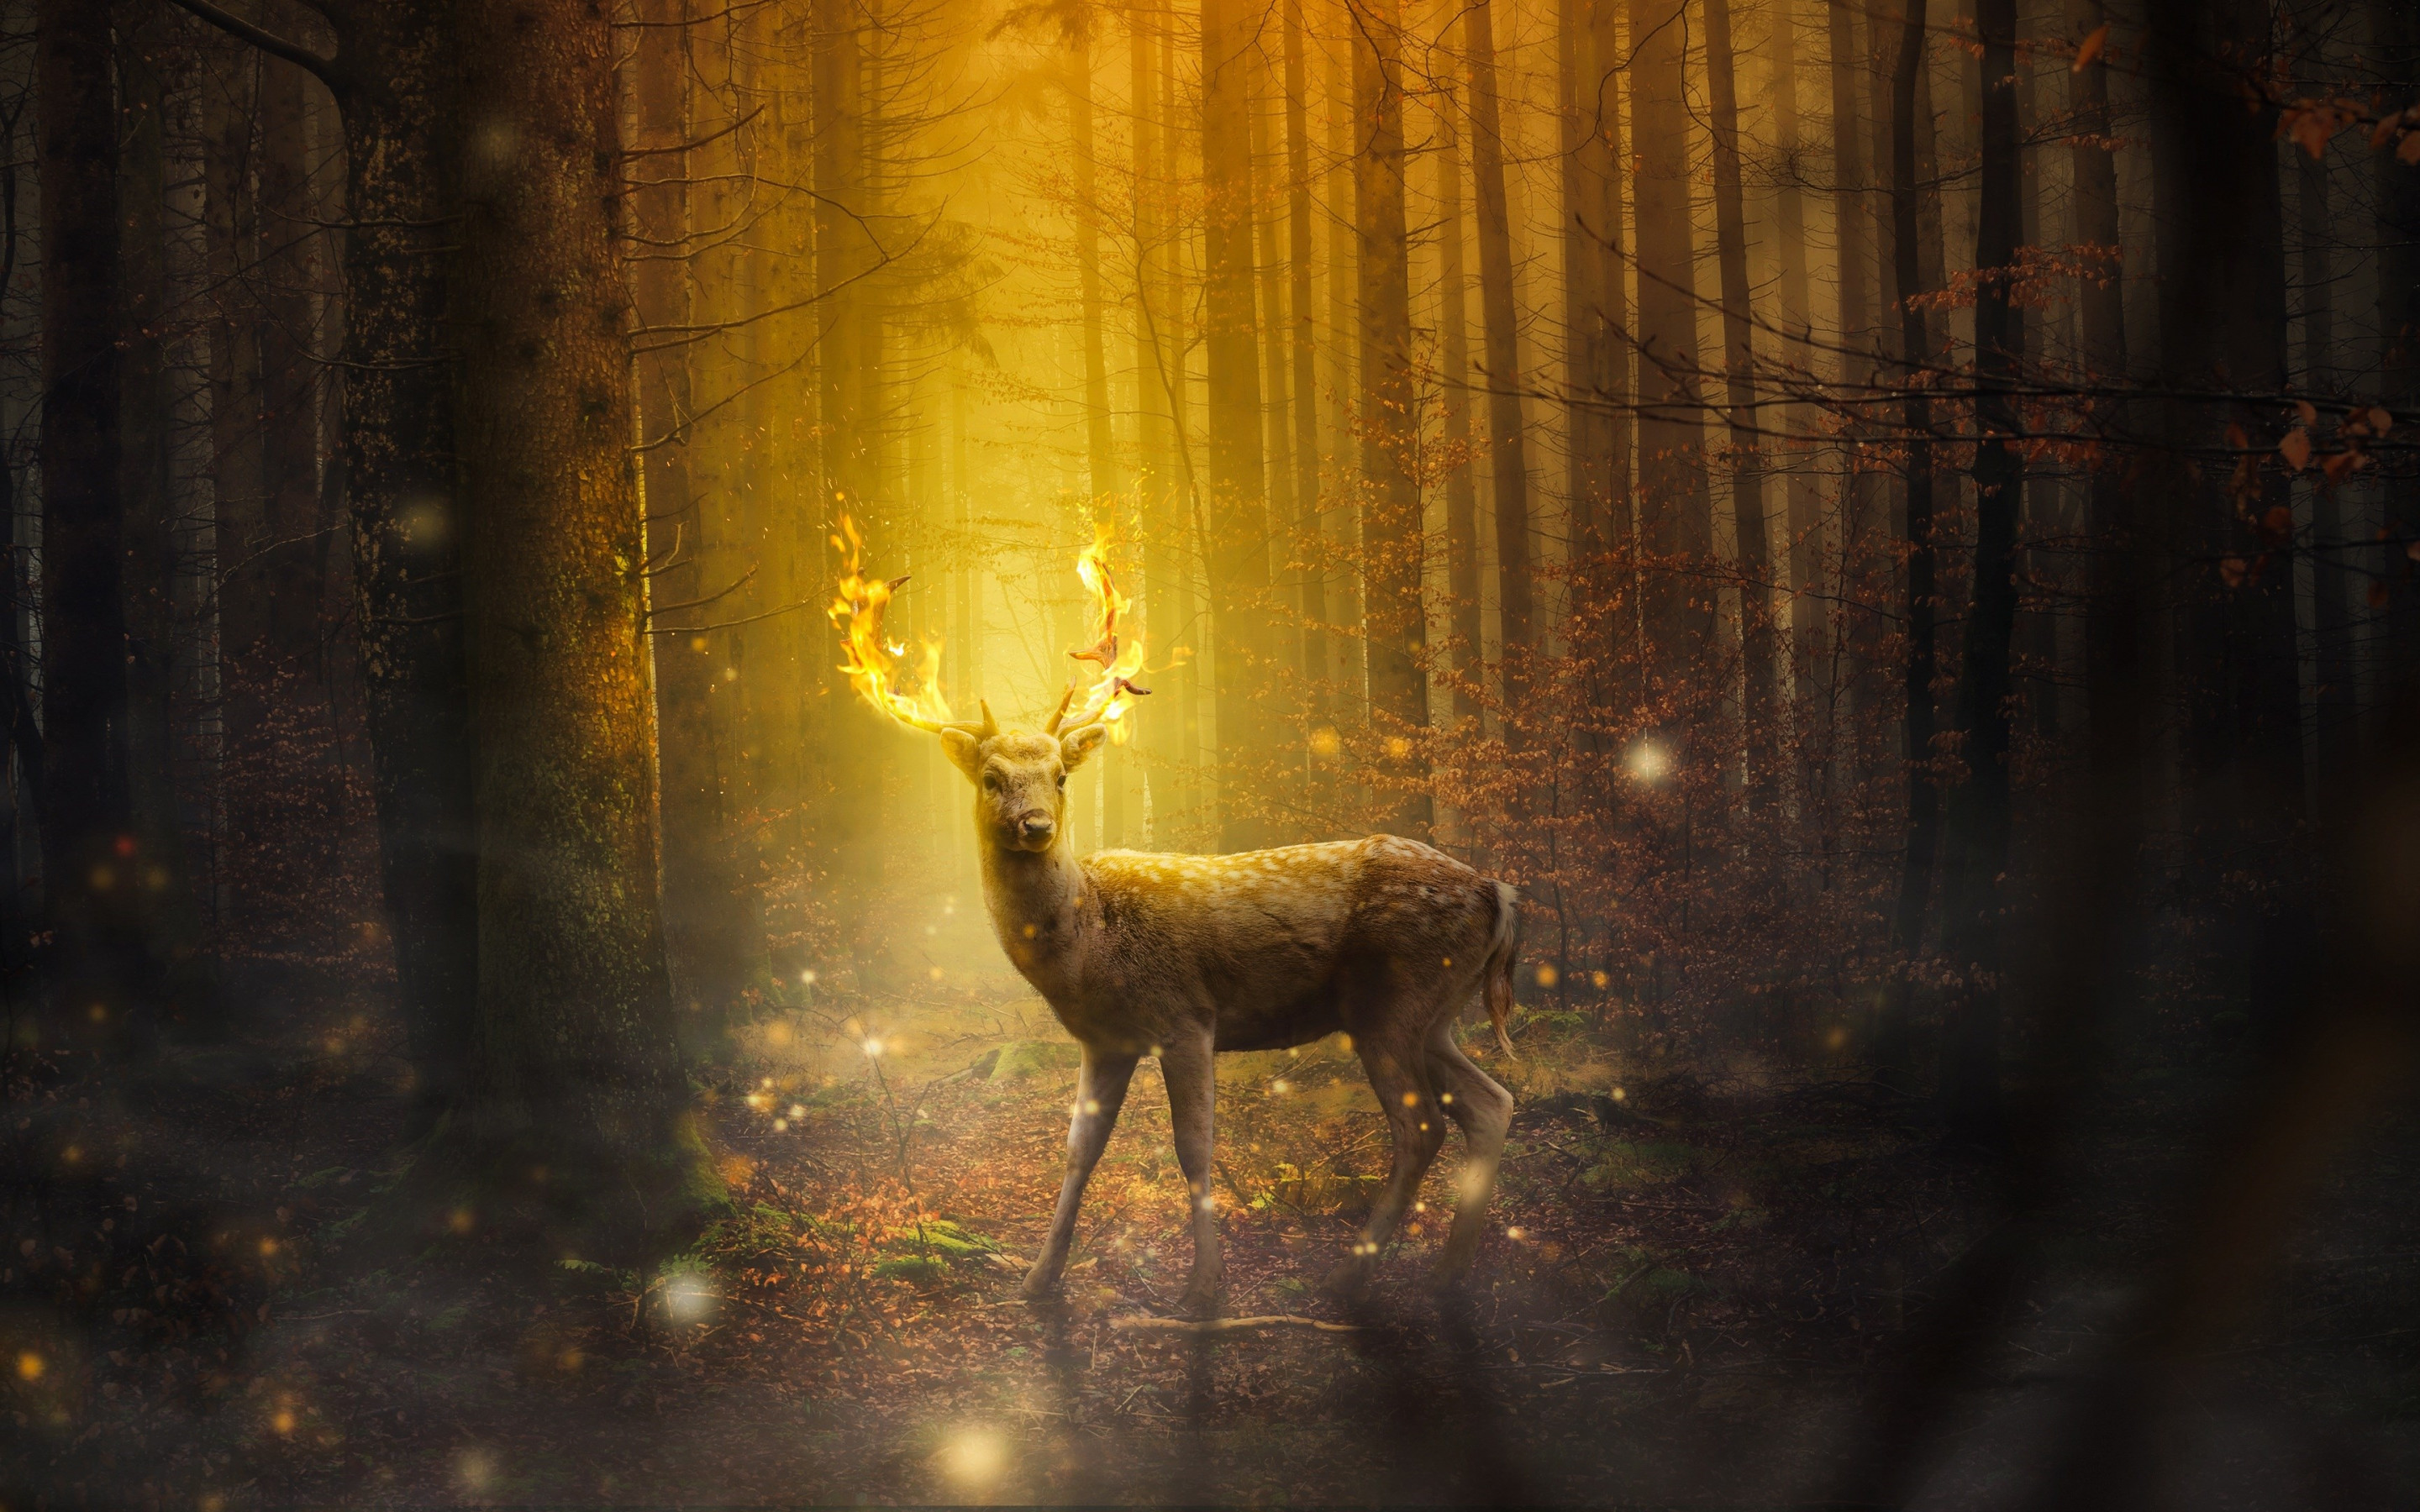 Fantasy, stag, horns, flames wallpaper 2880x1800